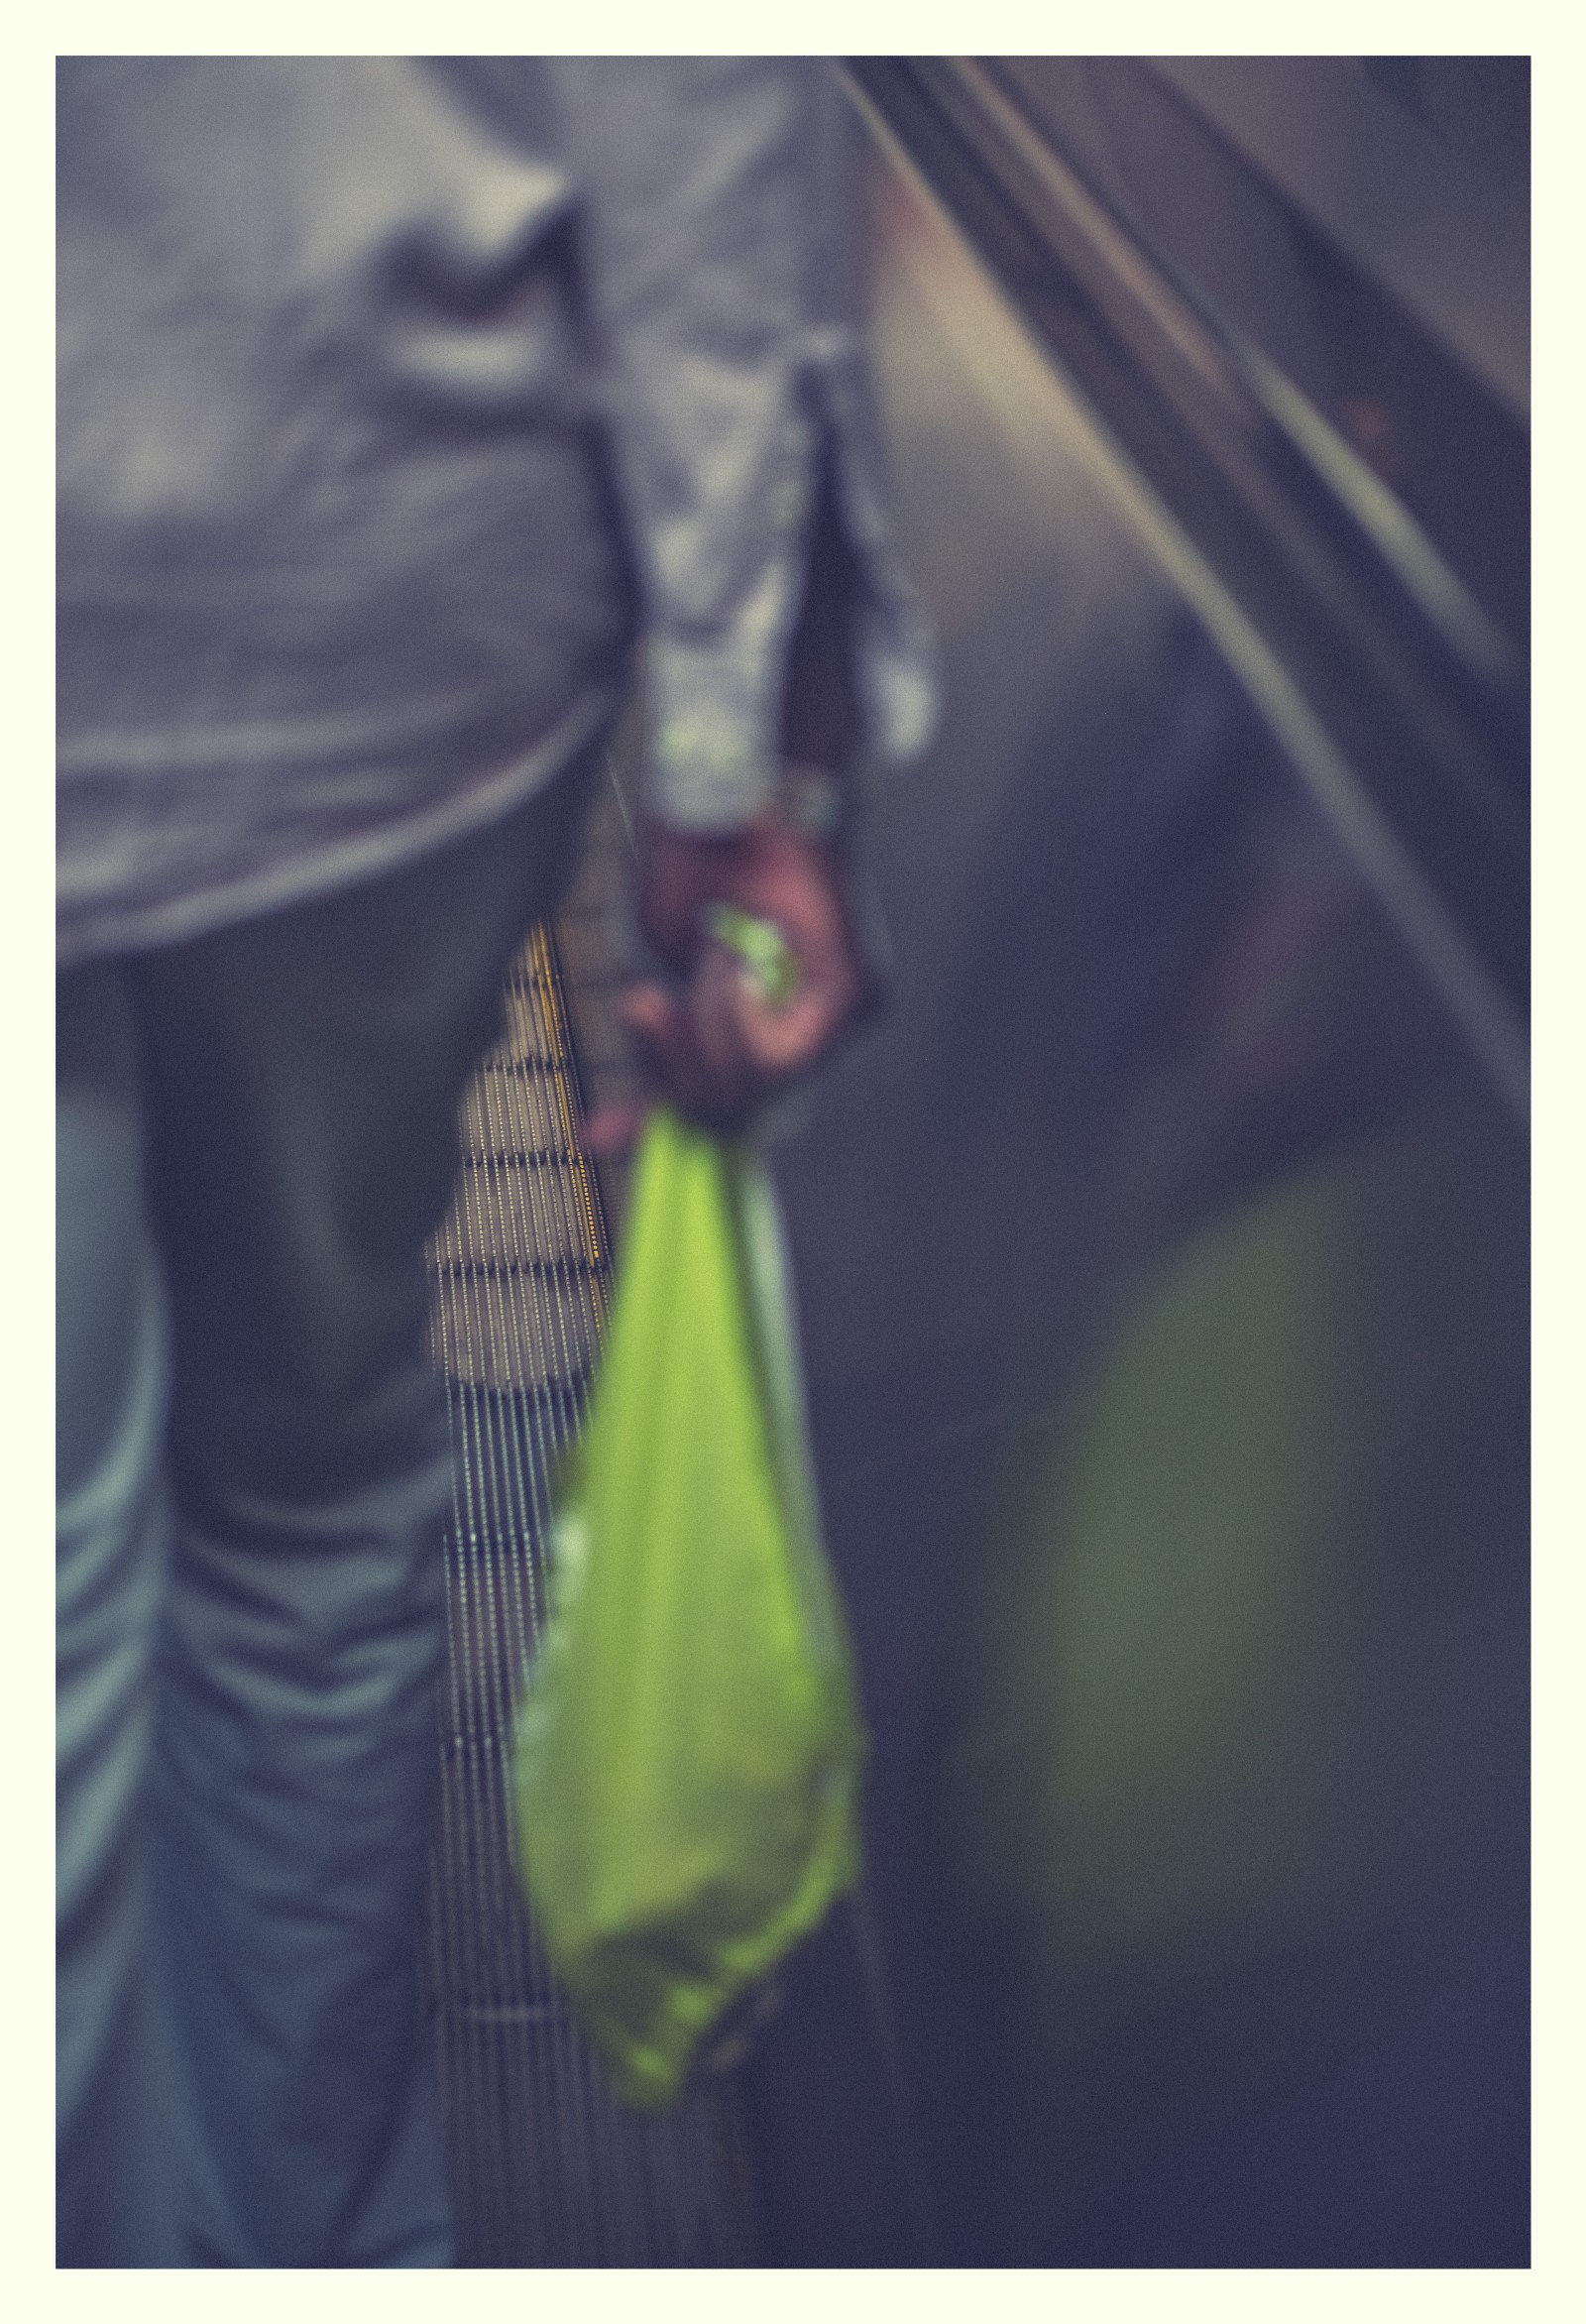 Person close up from behind with bag in hand